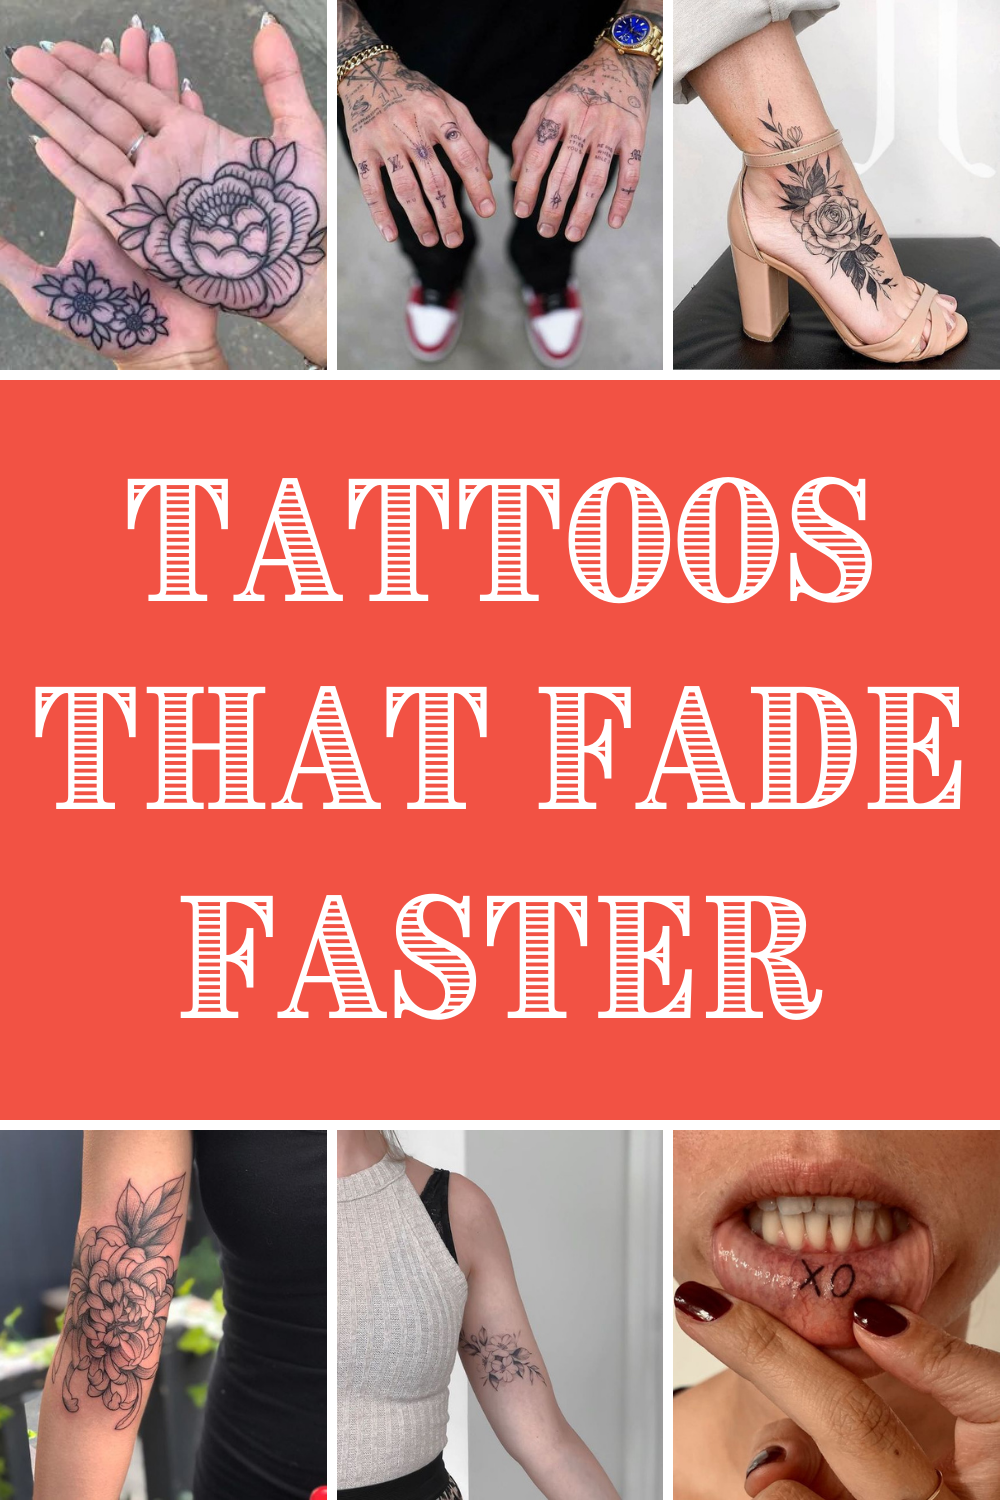 What are The Tattoos that fade fast